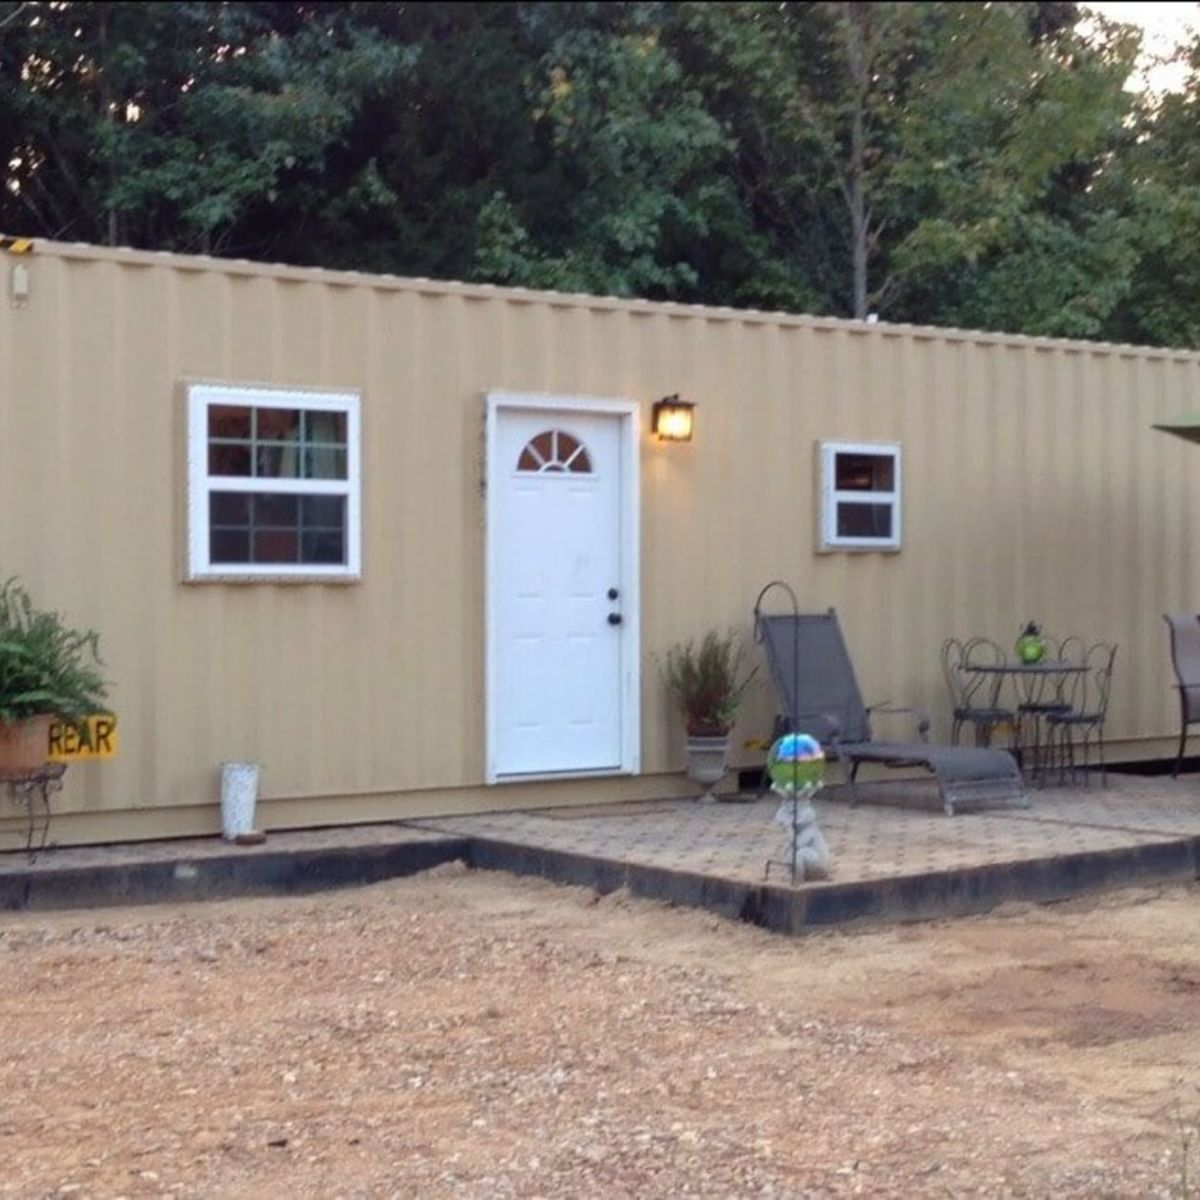 2 Bedroom Shipping Container Tiny House